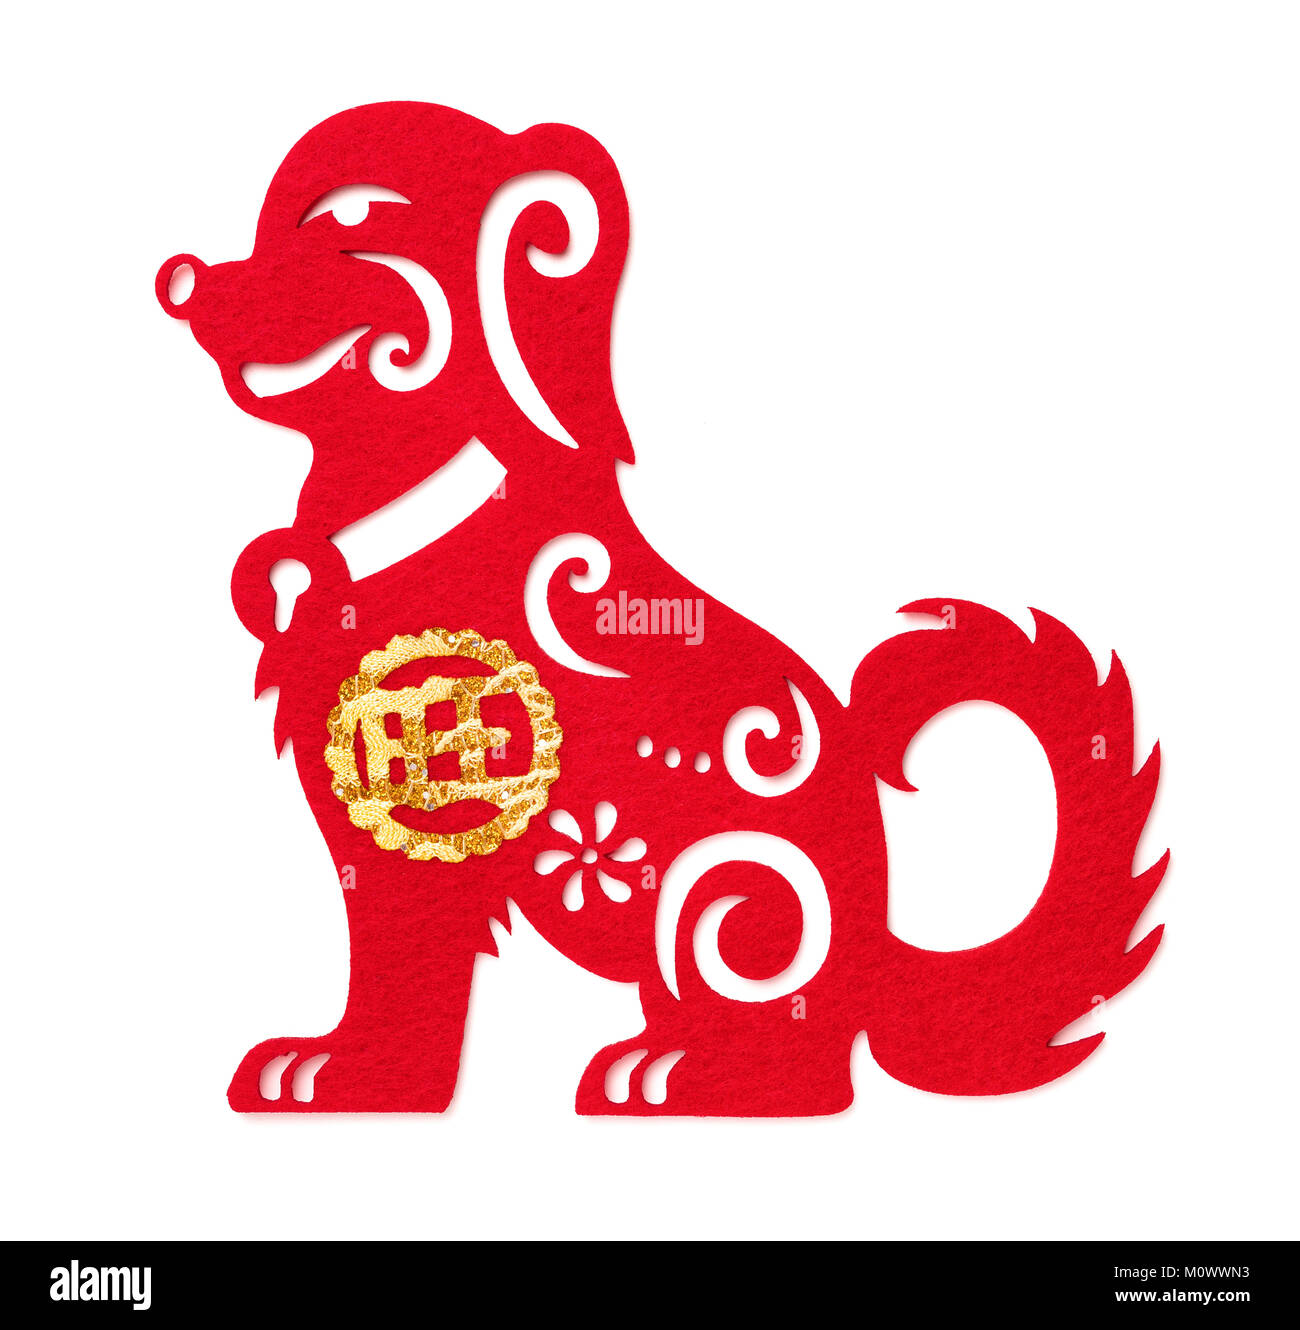 Dog symbol meaning image collections symbol and sign ideas non woven fabric dog as a symbol of chinese new year of the dog non woven buycottarizona